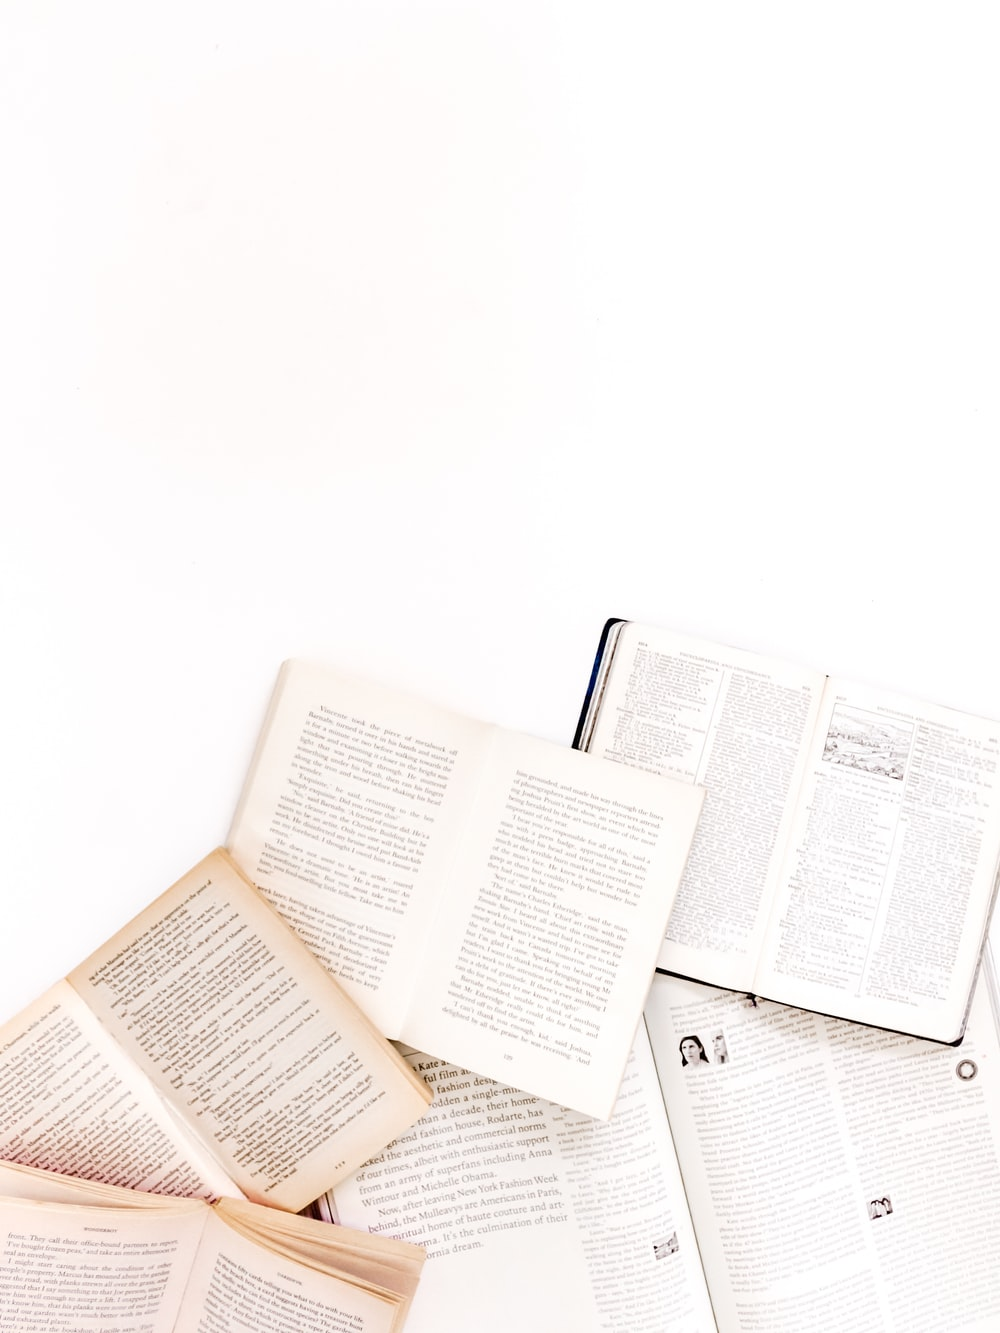 open books on white surface